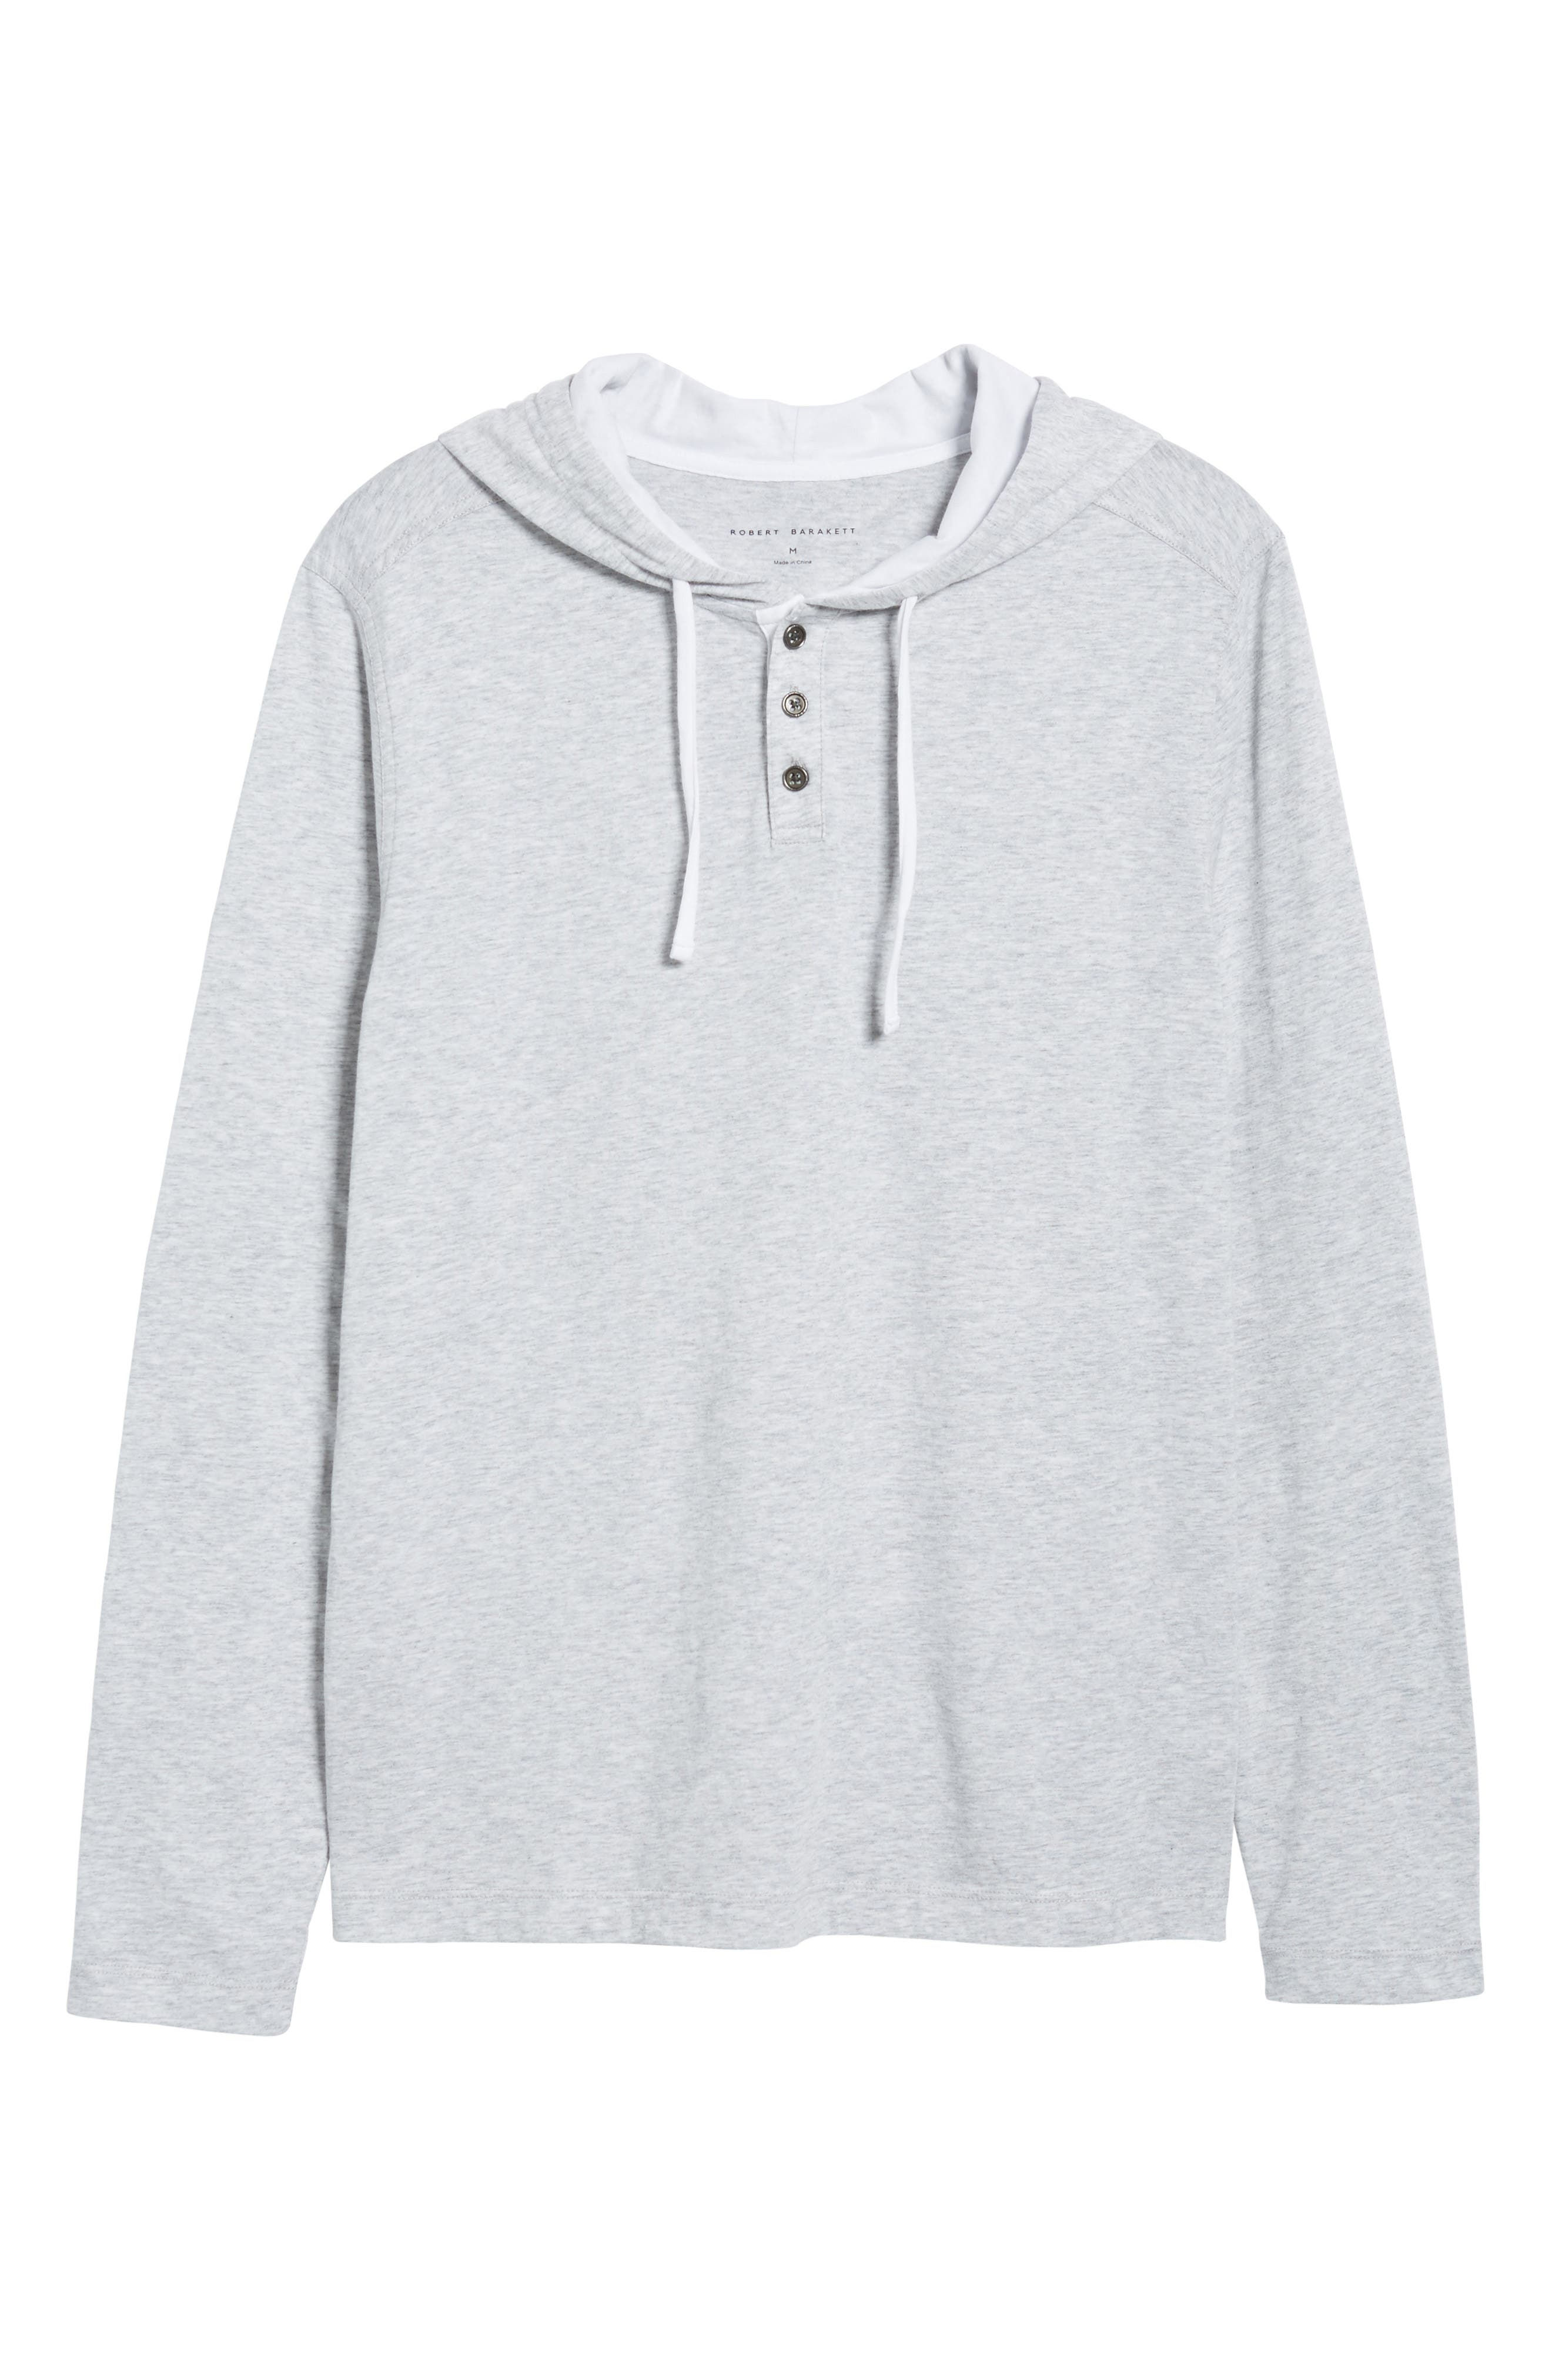 Carl Pullover Hoodie,                             Alternate thumbnail 6, color,                             Dove Grey